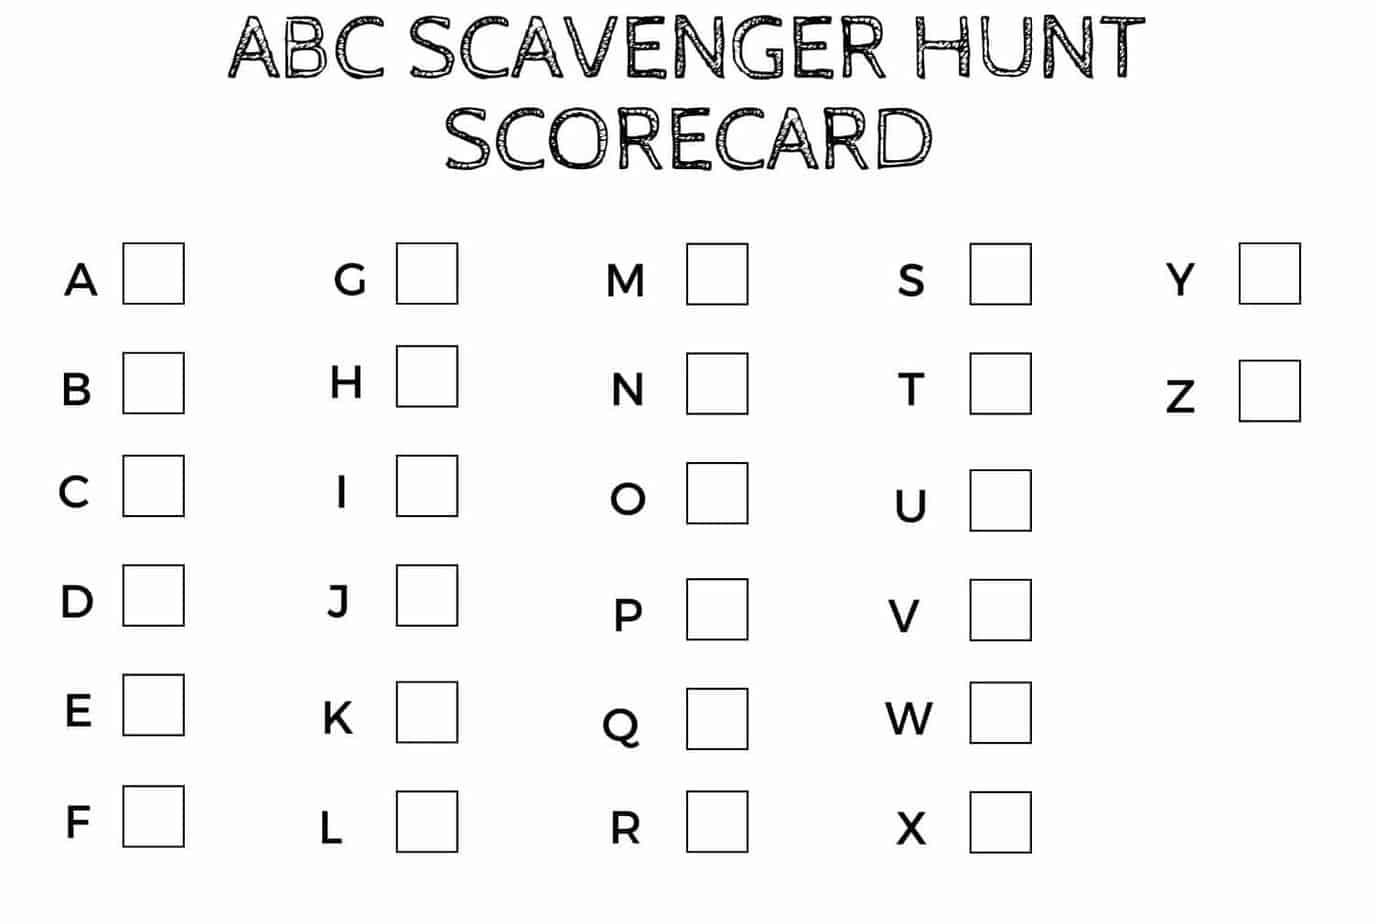 Is your preschooler ready to master their ABCs? The ABC letter recognition scavenger hunt makes letter association fun - the best way for littles to learn.